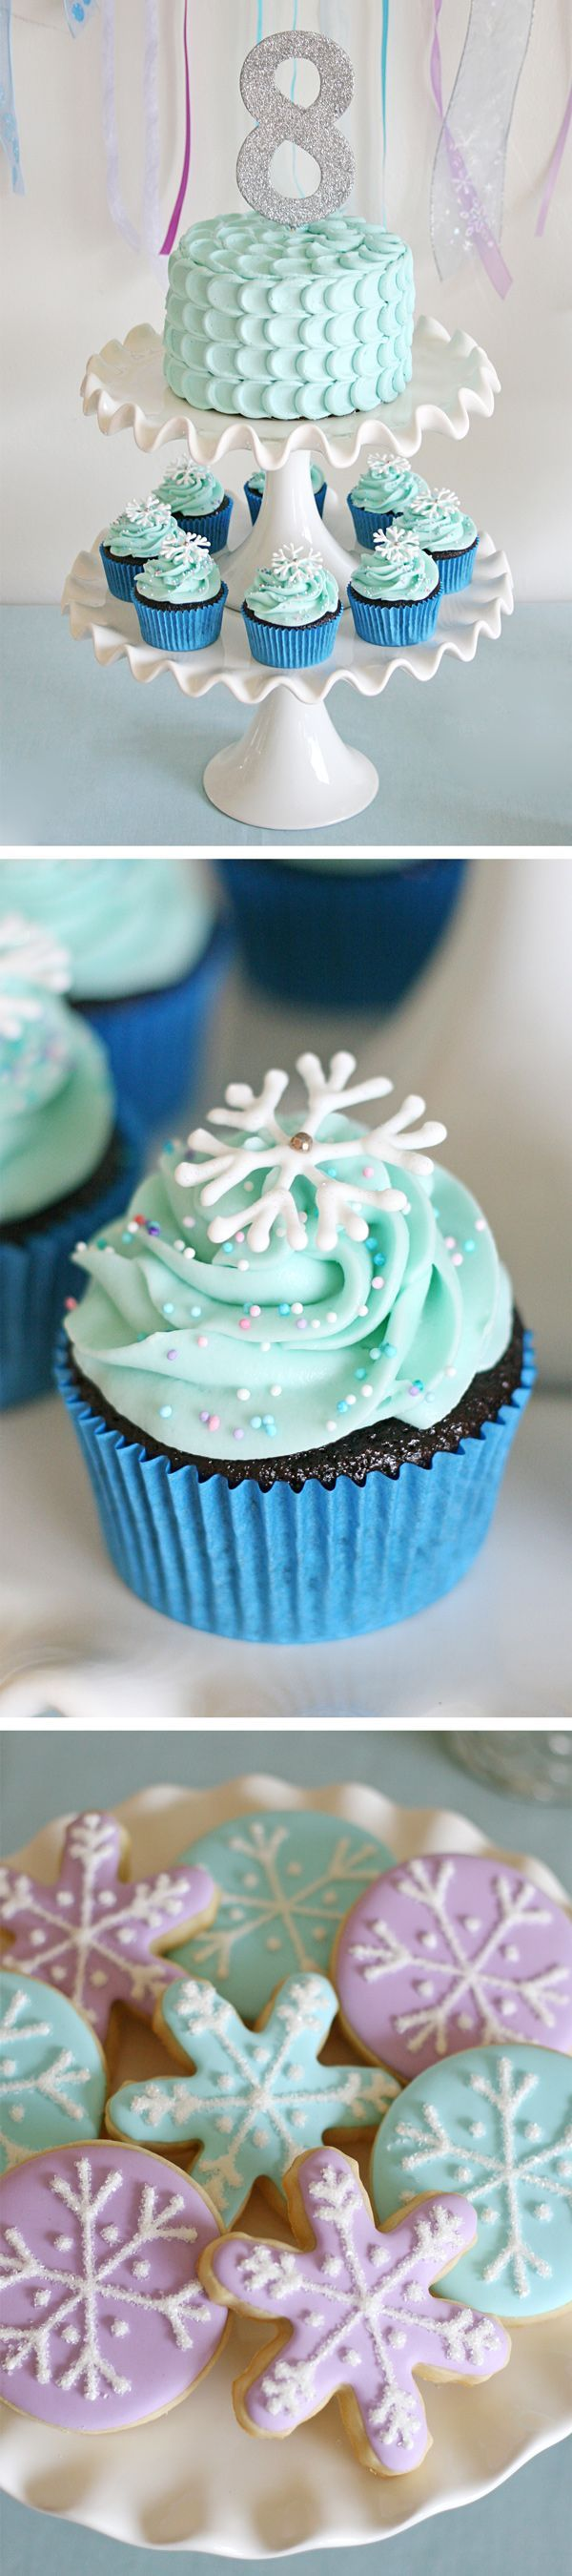 Beautiful ideas for a Frozen themed birthday!  Perfect for any winter party!